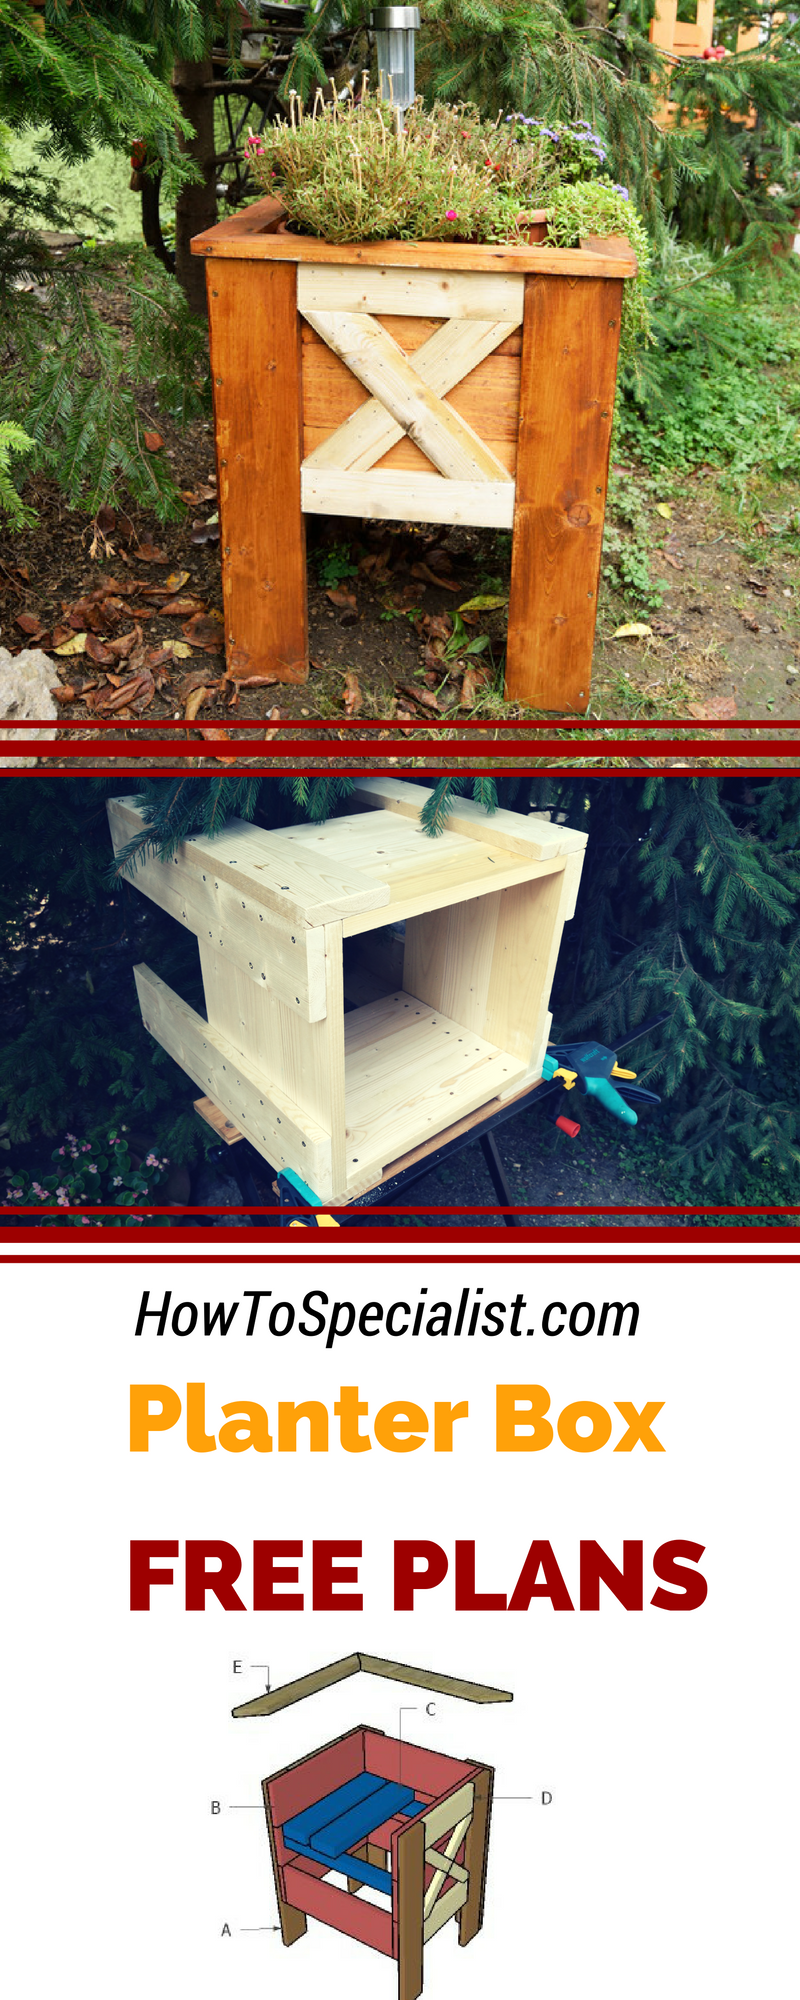 hight resolution of easy to follow free plans for you to learn how to build an outdoor wood planter box build this decorative planter box under 40 using my step by step plans